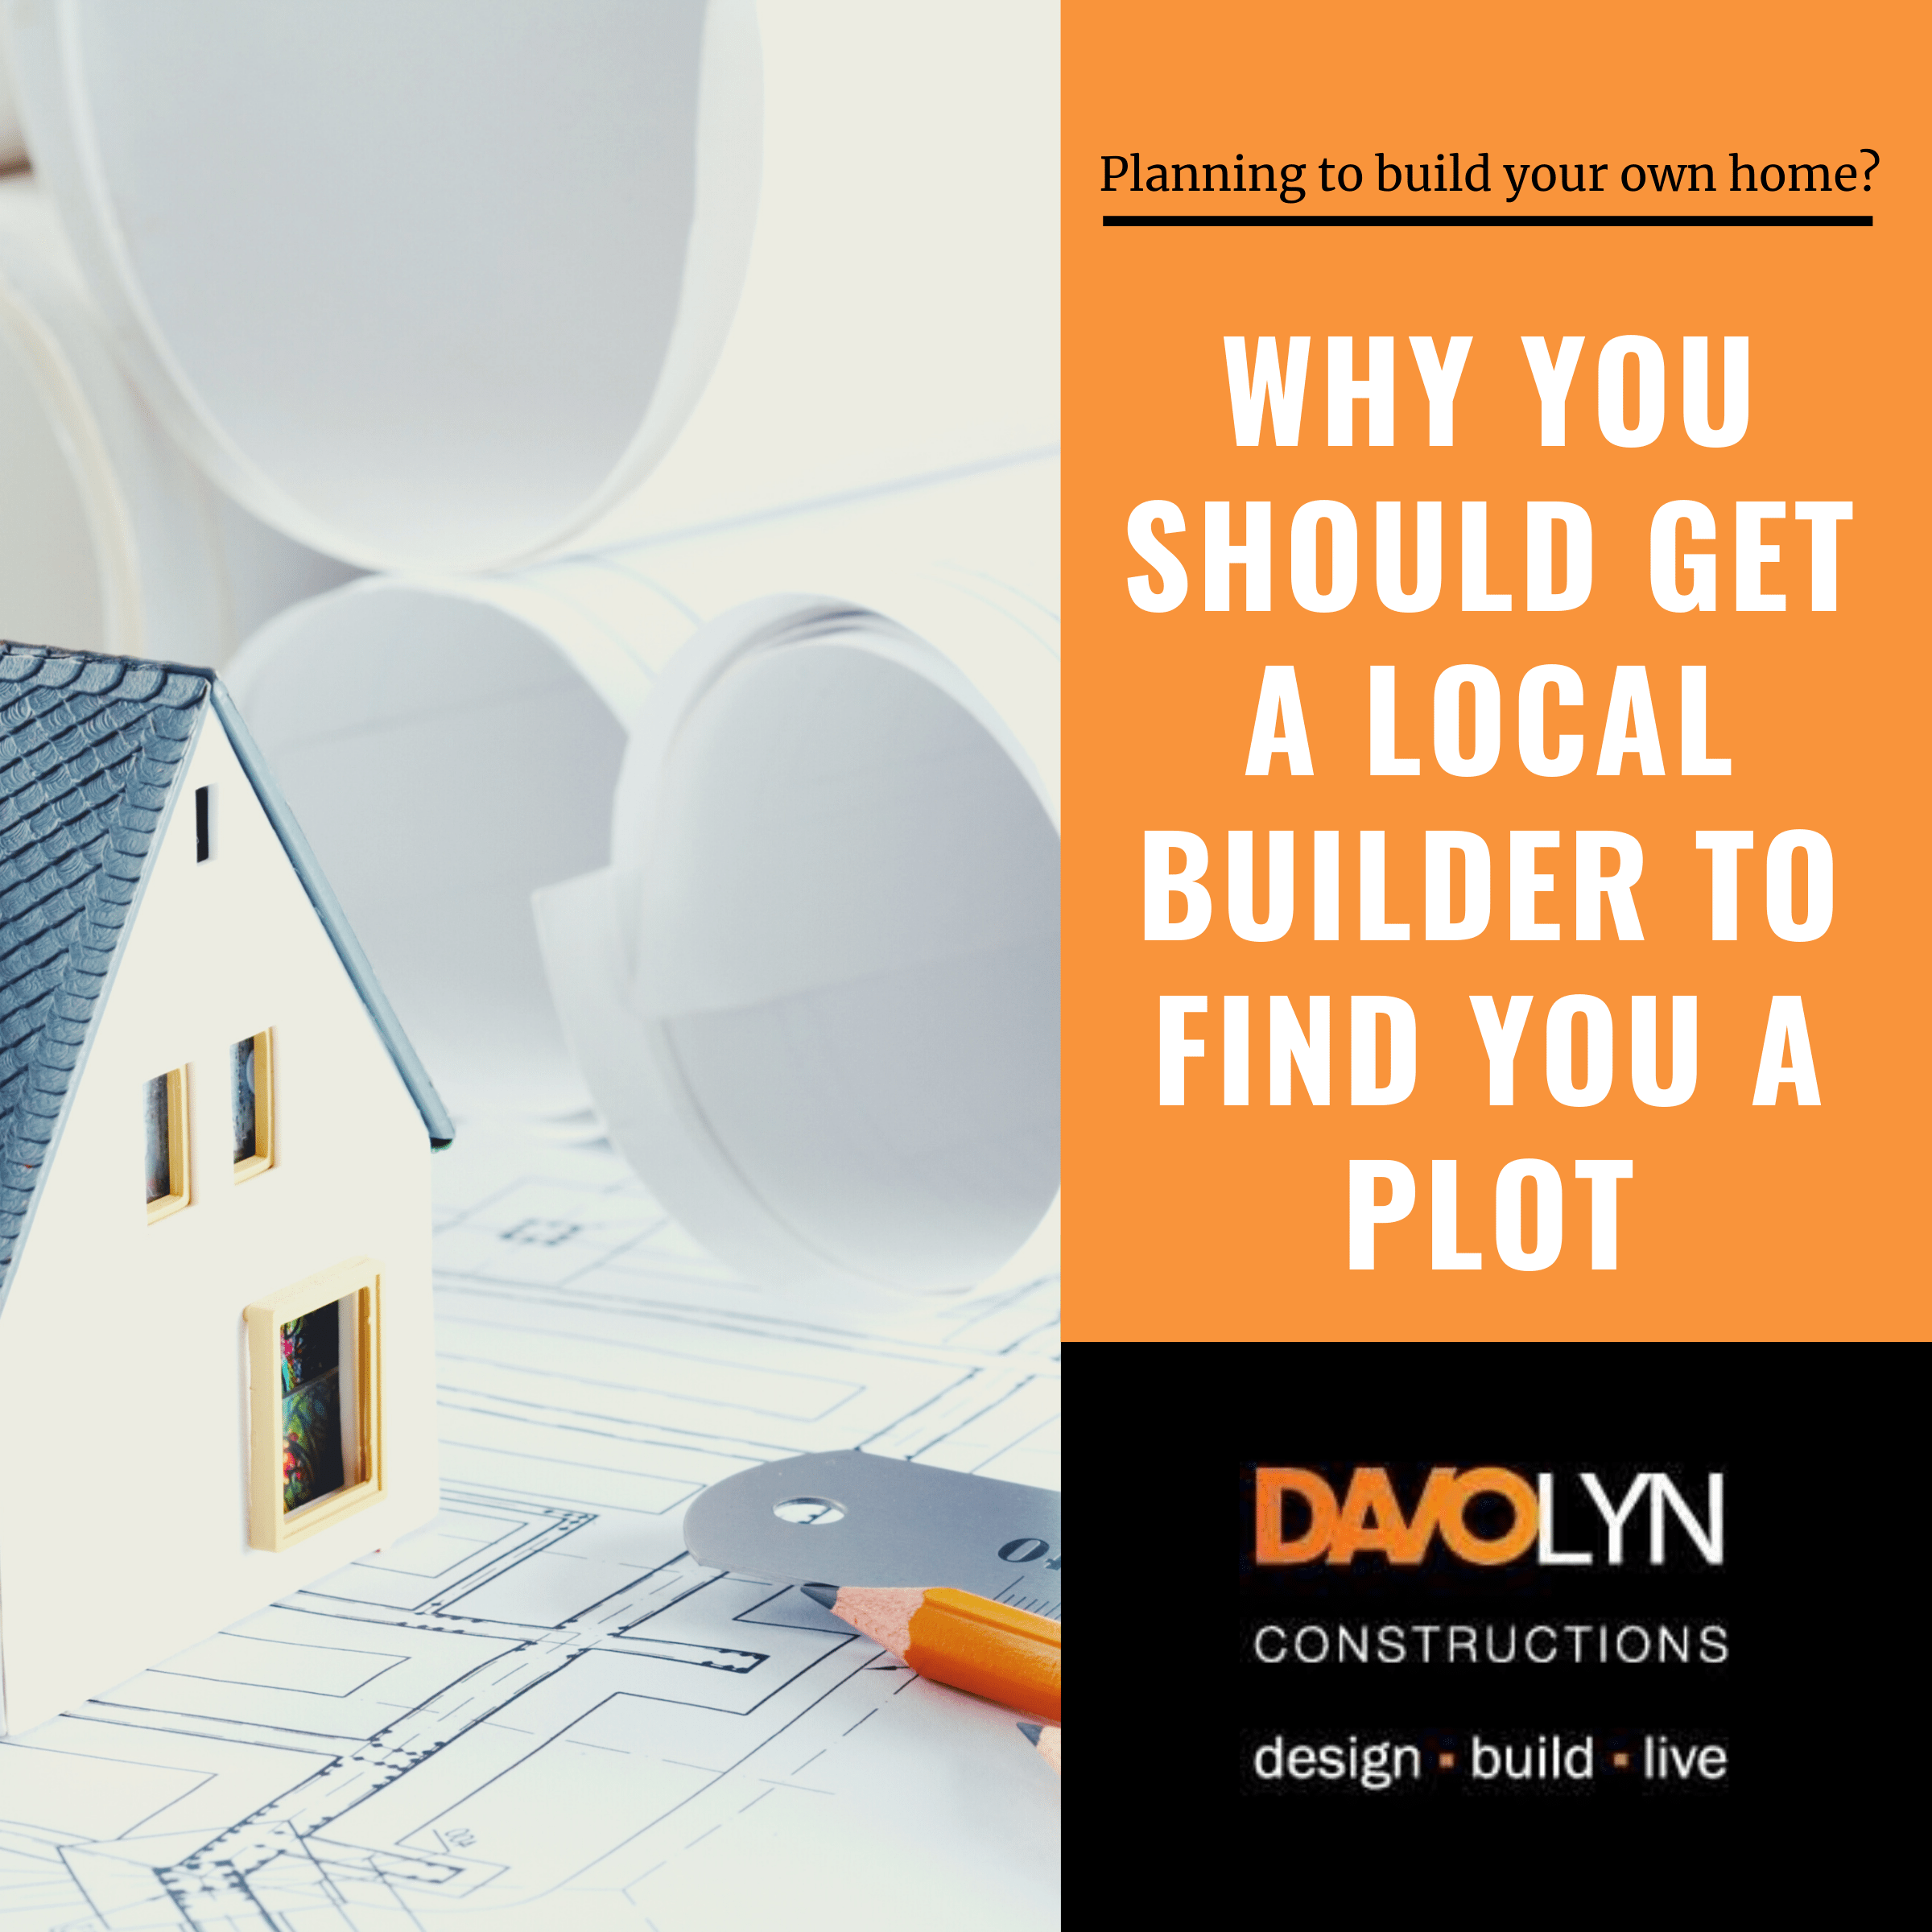 Why You Should Get A Local Builder to Find You A Plot